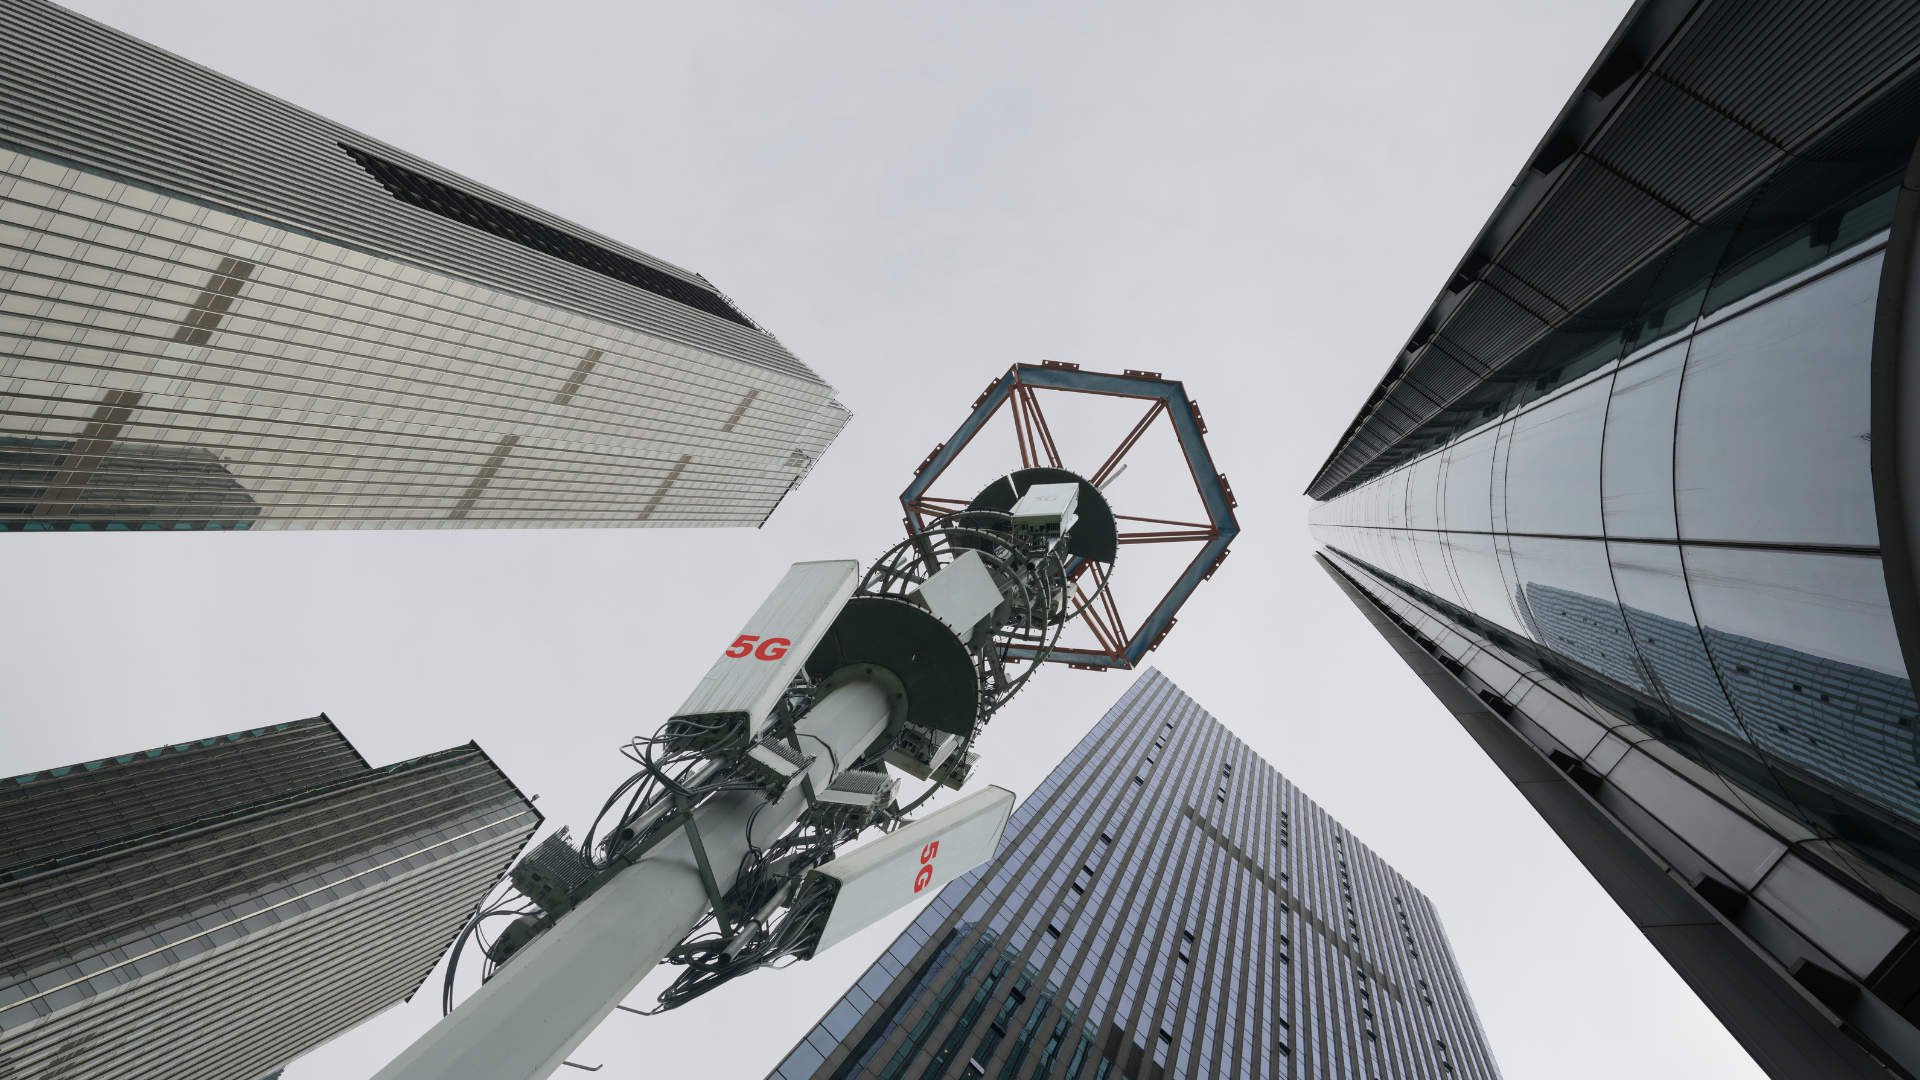 5G transmission tower in downtown with corporate buildings